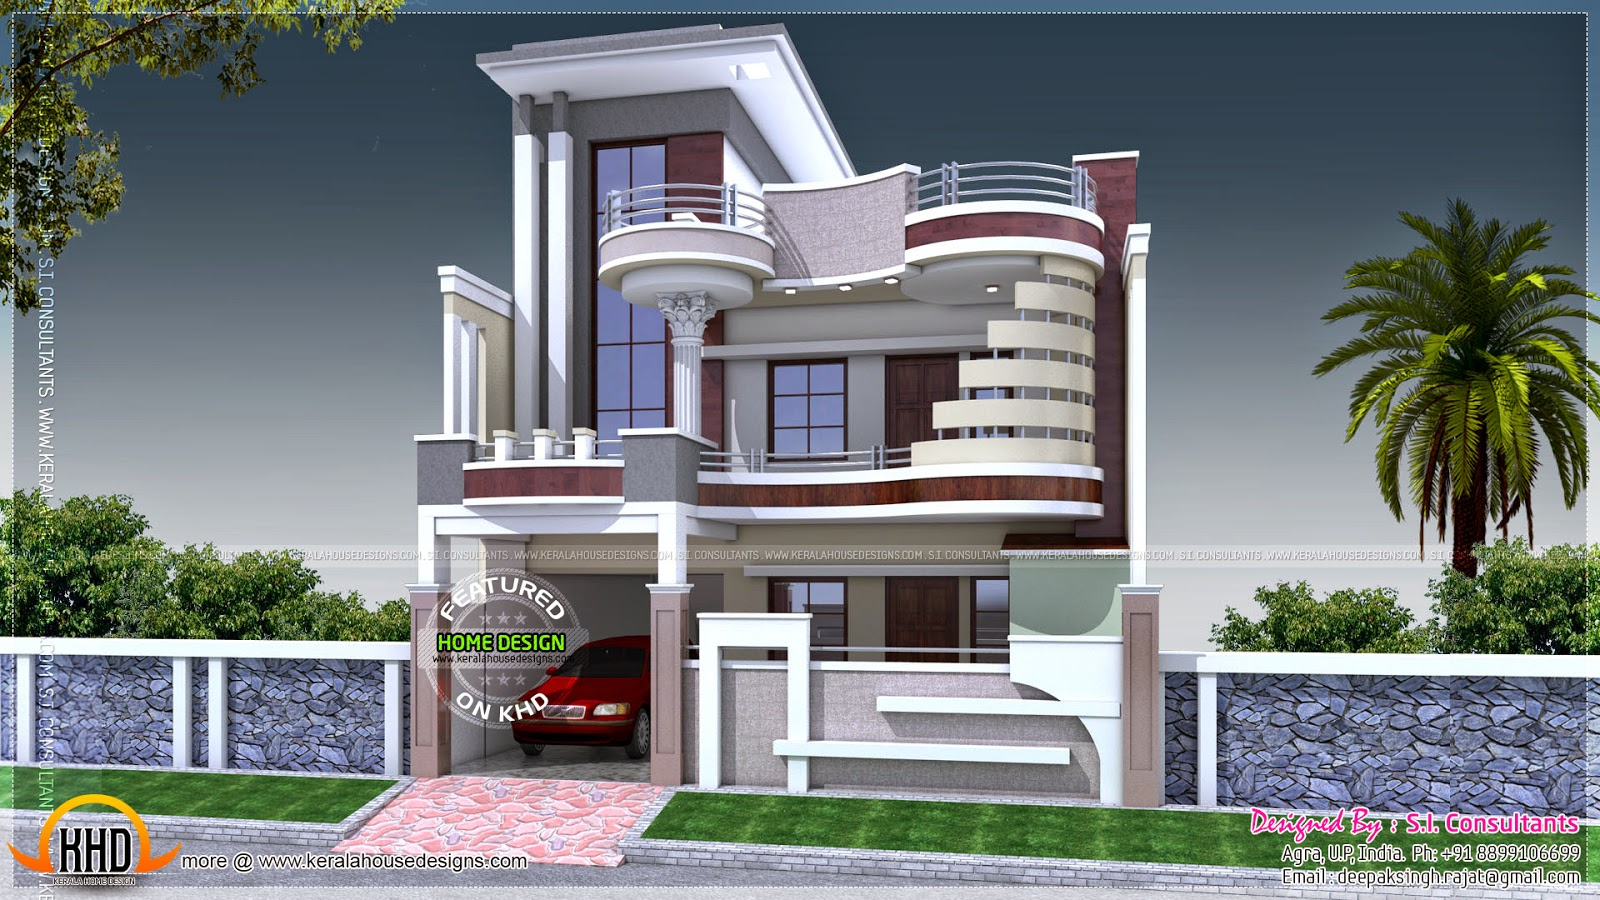 kerala house architecture plans july 2014 kerala home design and floor plans